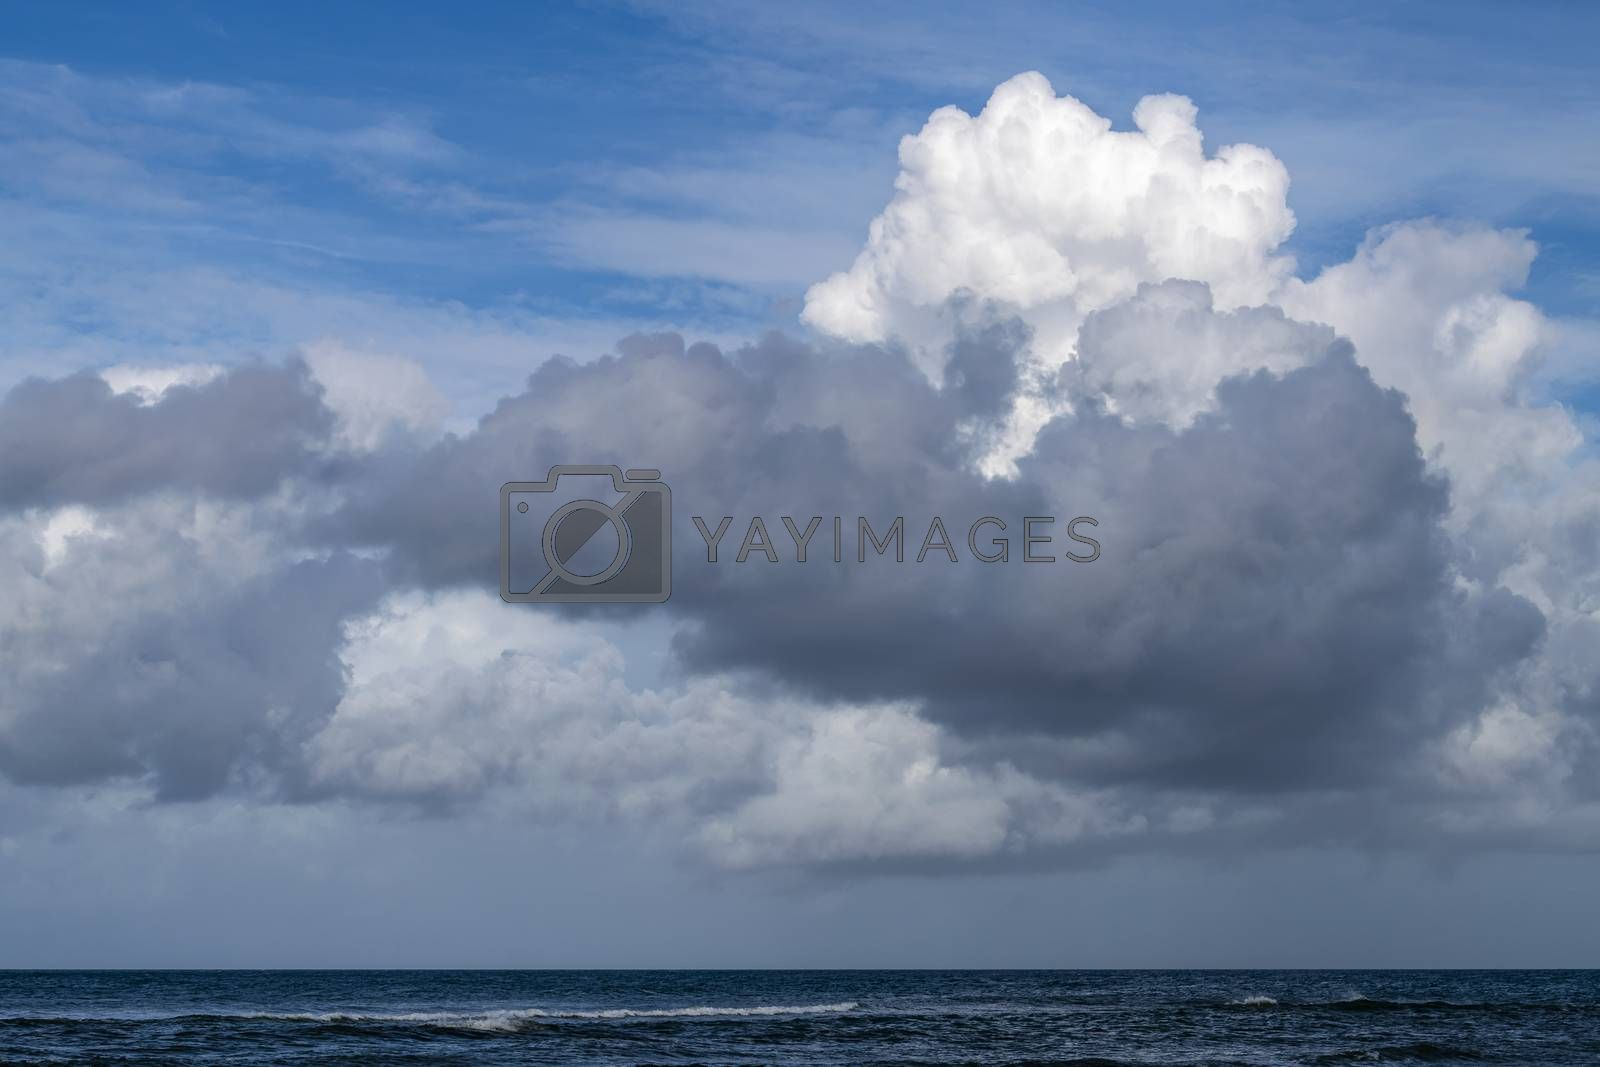 Clouds over the North Sea   by Tofotografie